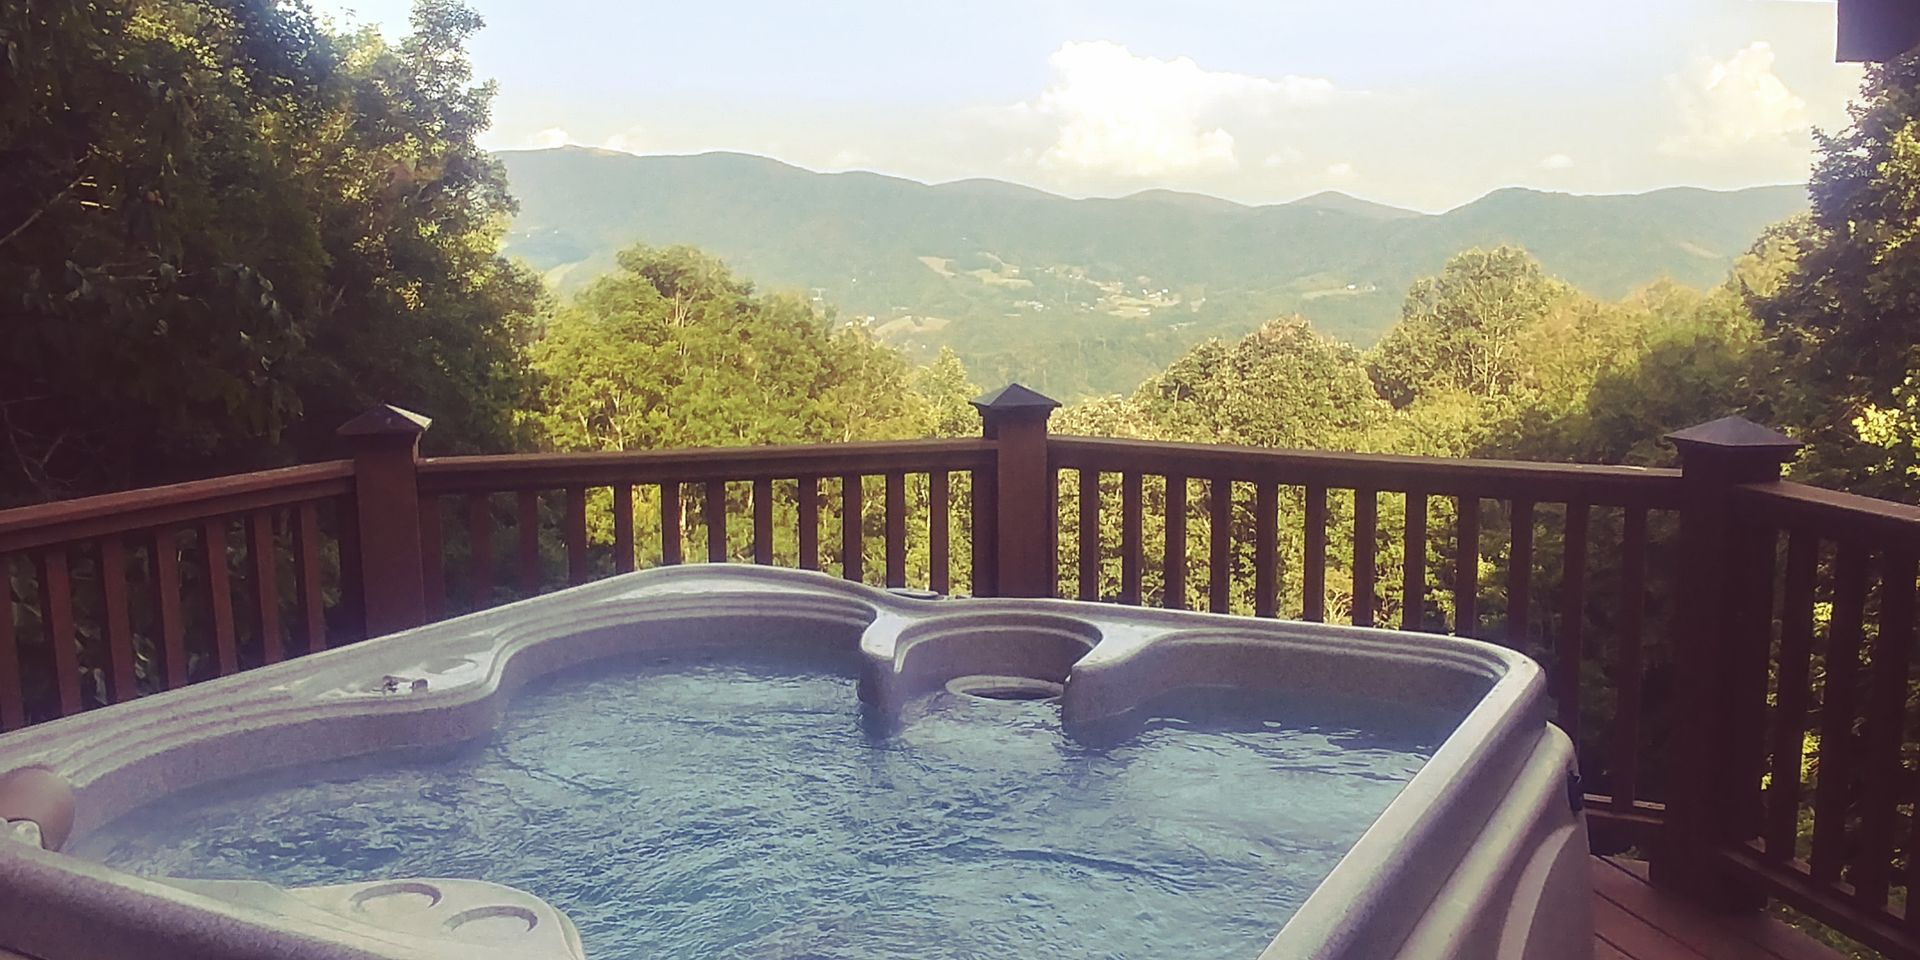 Soak away your worries with that view in the newly added hot tub